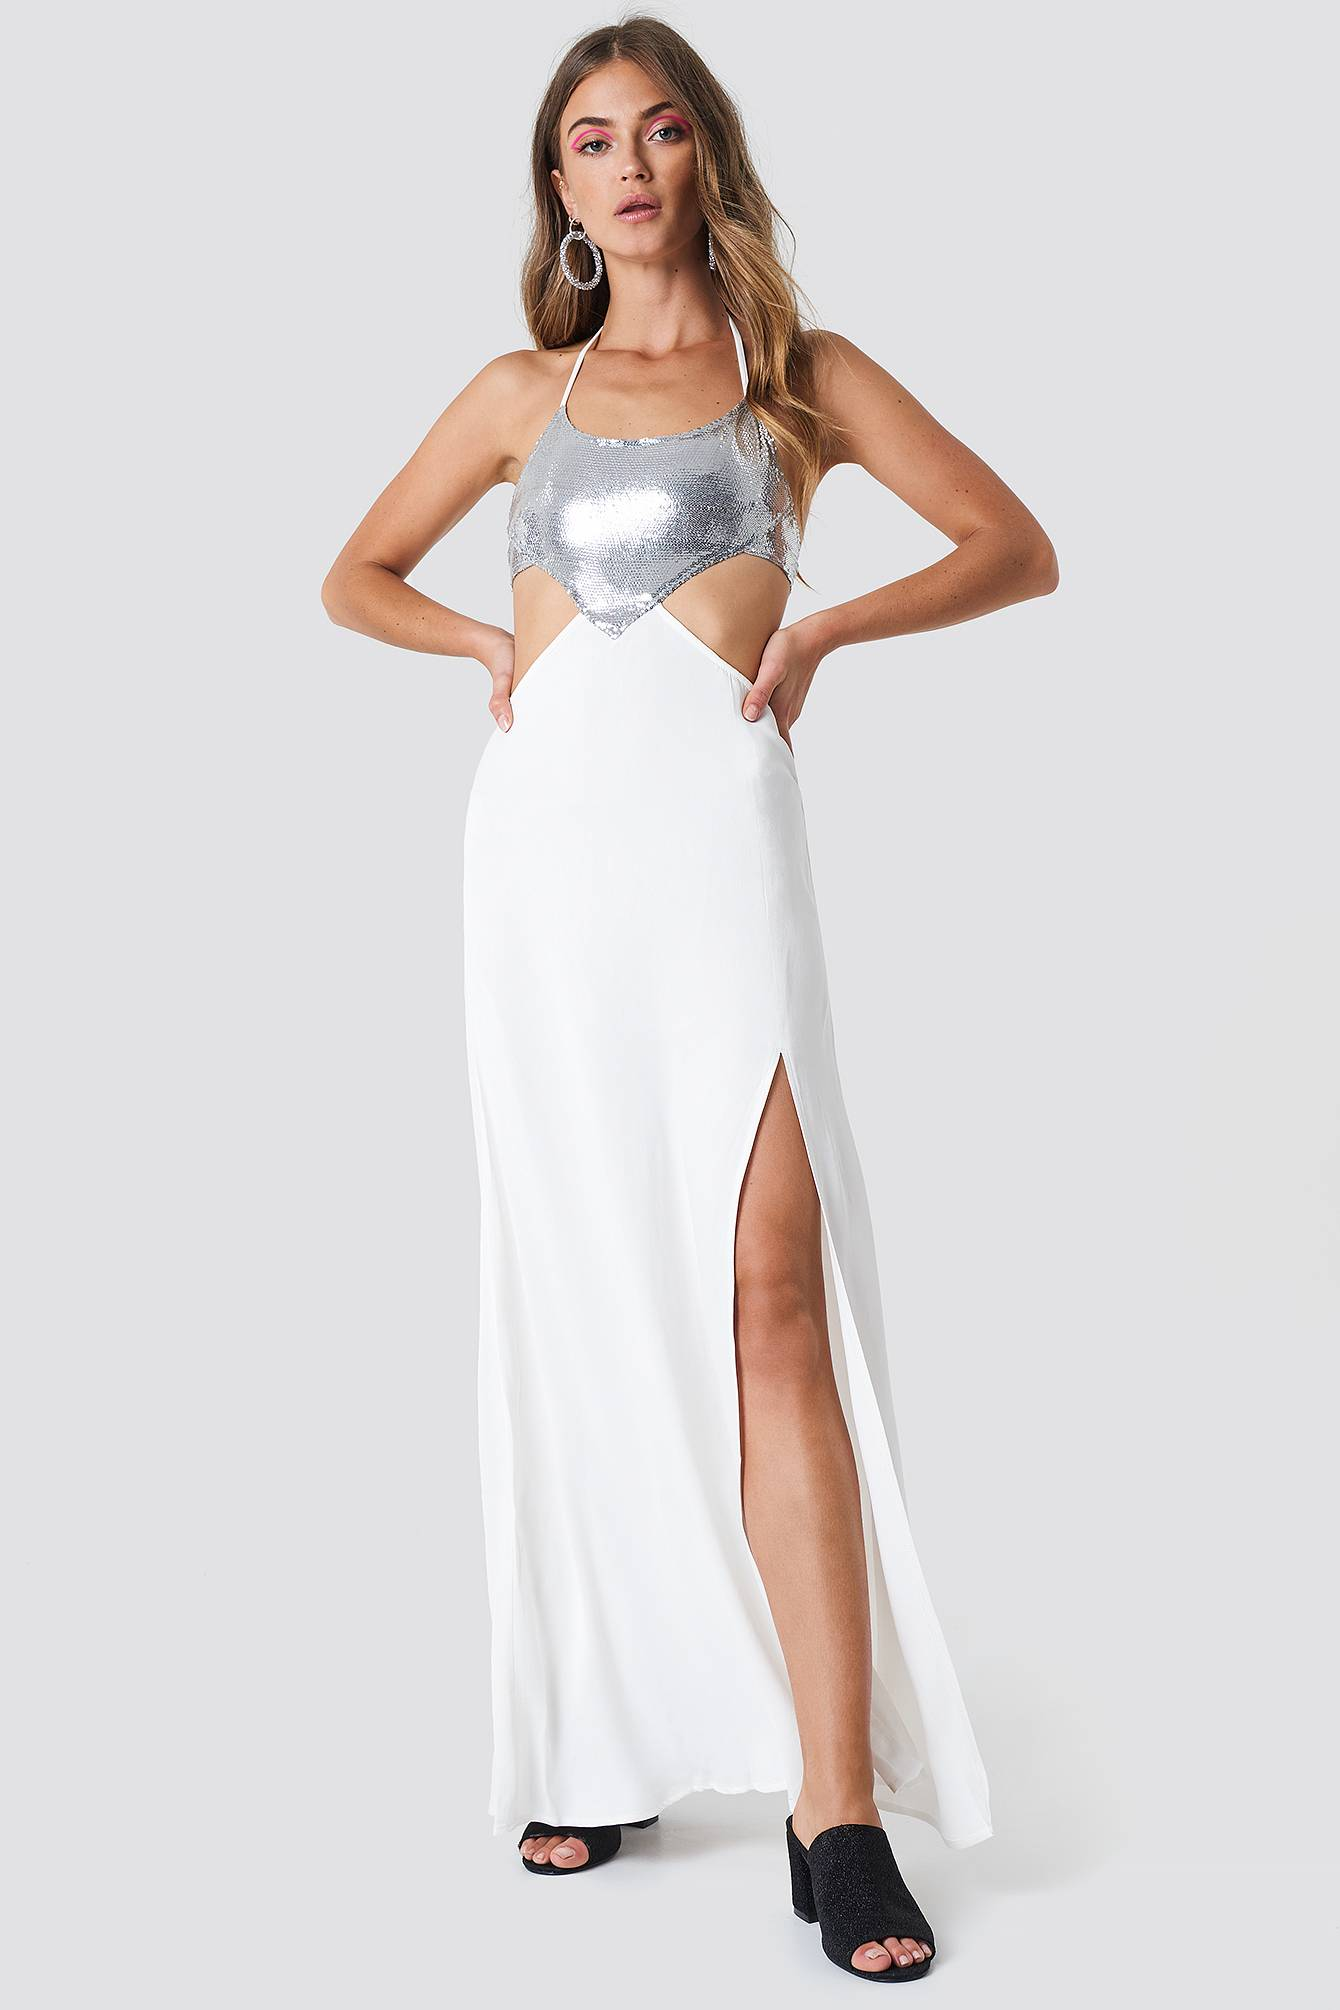 Image of Galore x NA-KD Halterneck Cut Out Maxi Dress - White